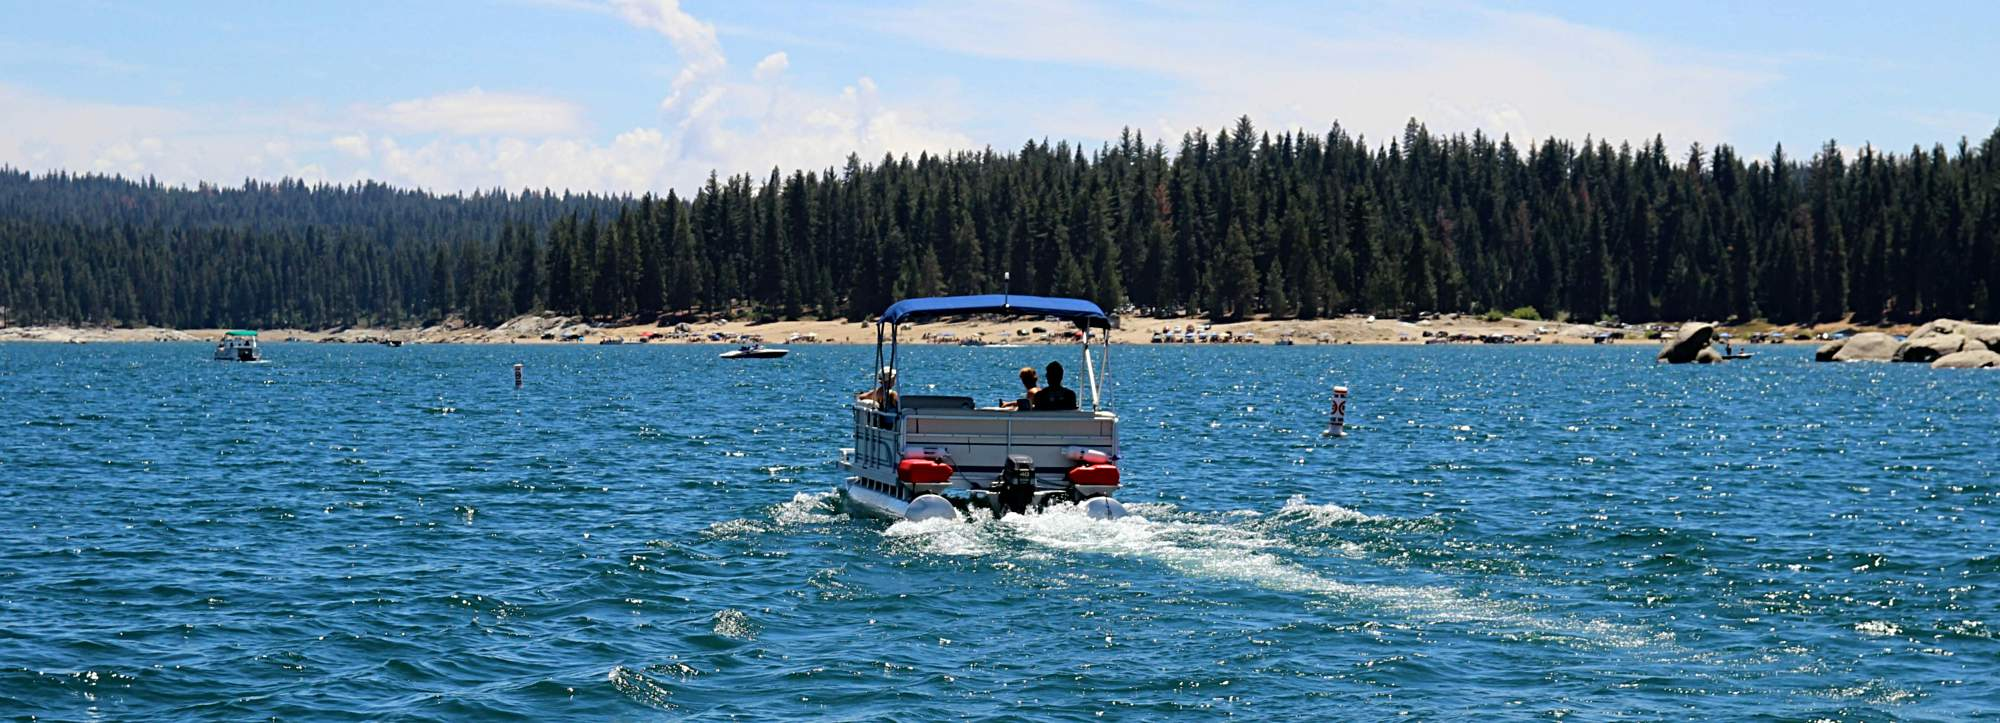 Shaver Lake - Relaxing in the Midst of the Sierra Nevada